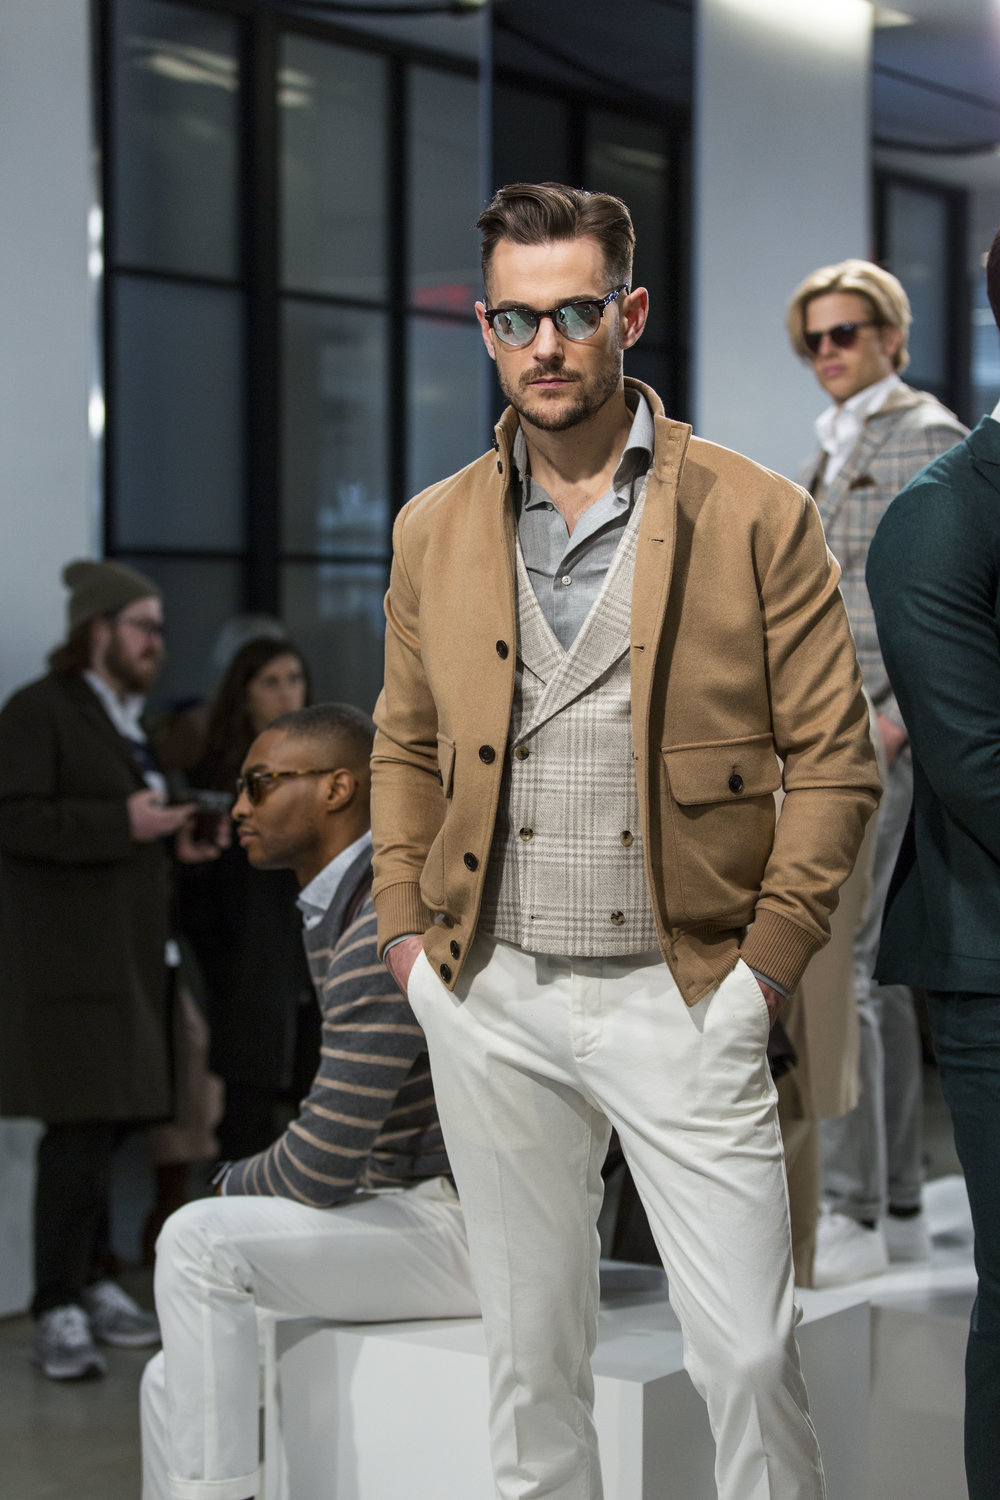 SUITSUPPLY-FALL -WINTER-NYFWM2018-MENS-COLLECTION- AW18-NYFWM-8.jpg